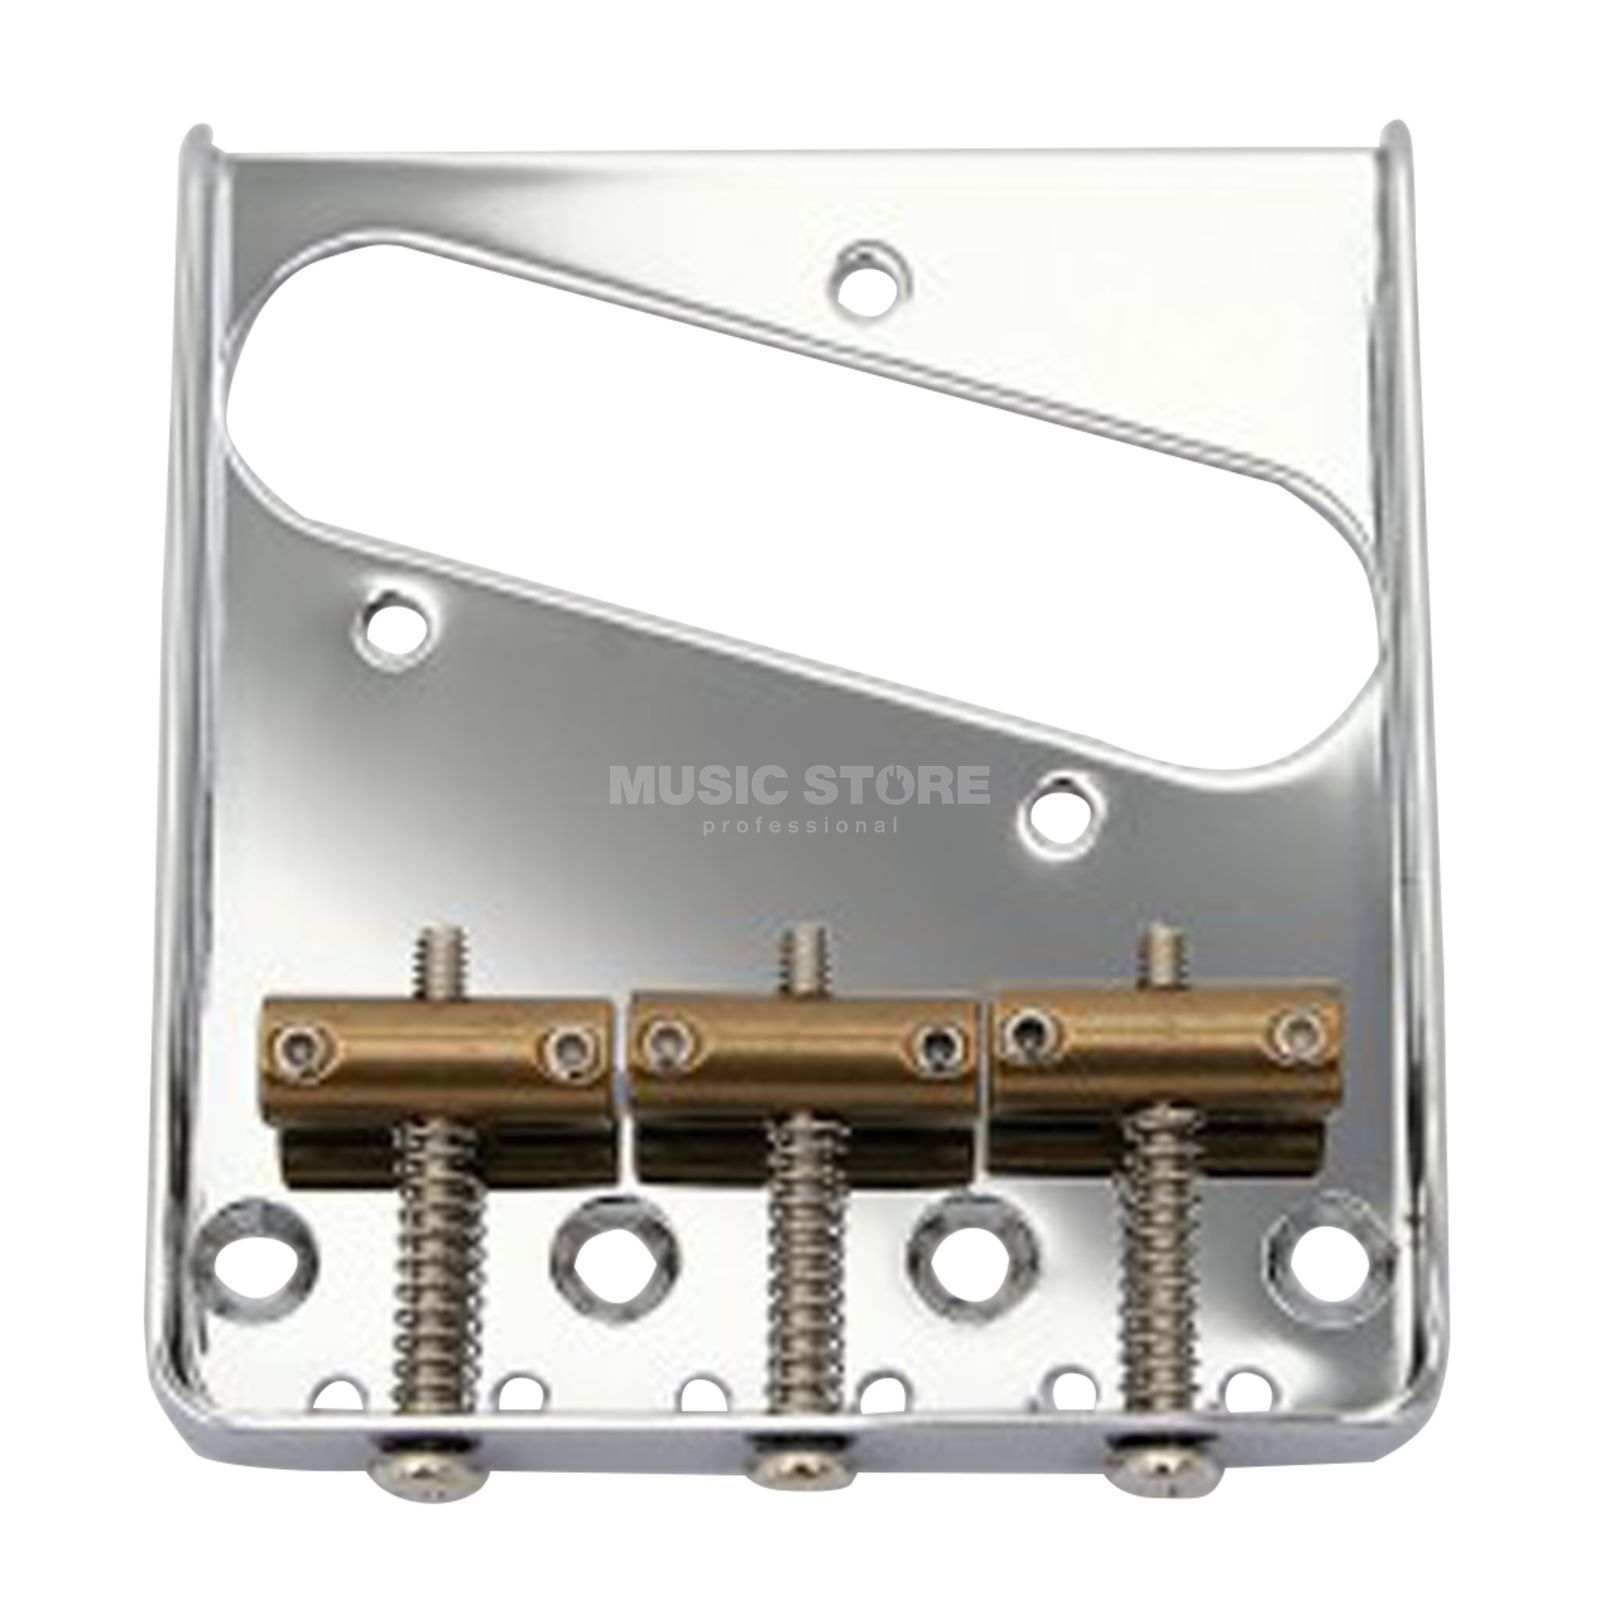 Göldo Tele  Bridge Vintage chrome - 3 Brass Guides Zdjęcie produktu